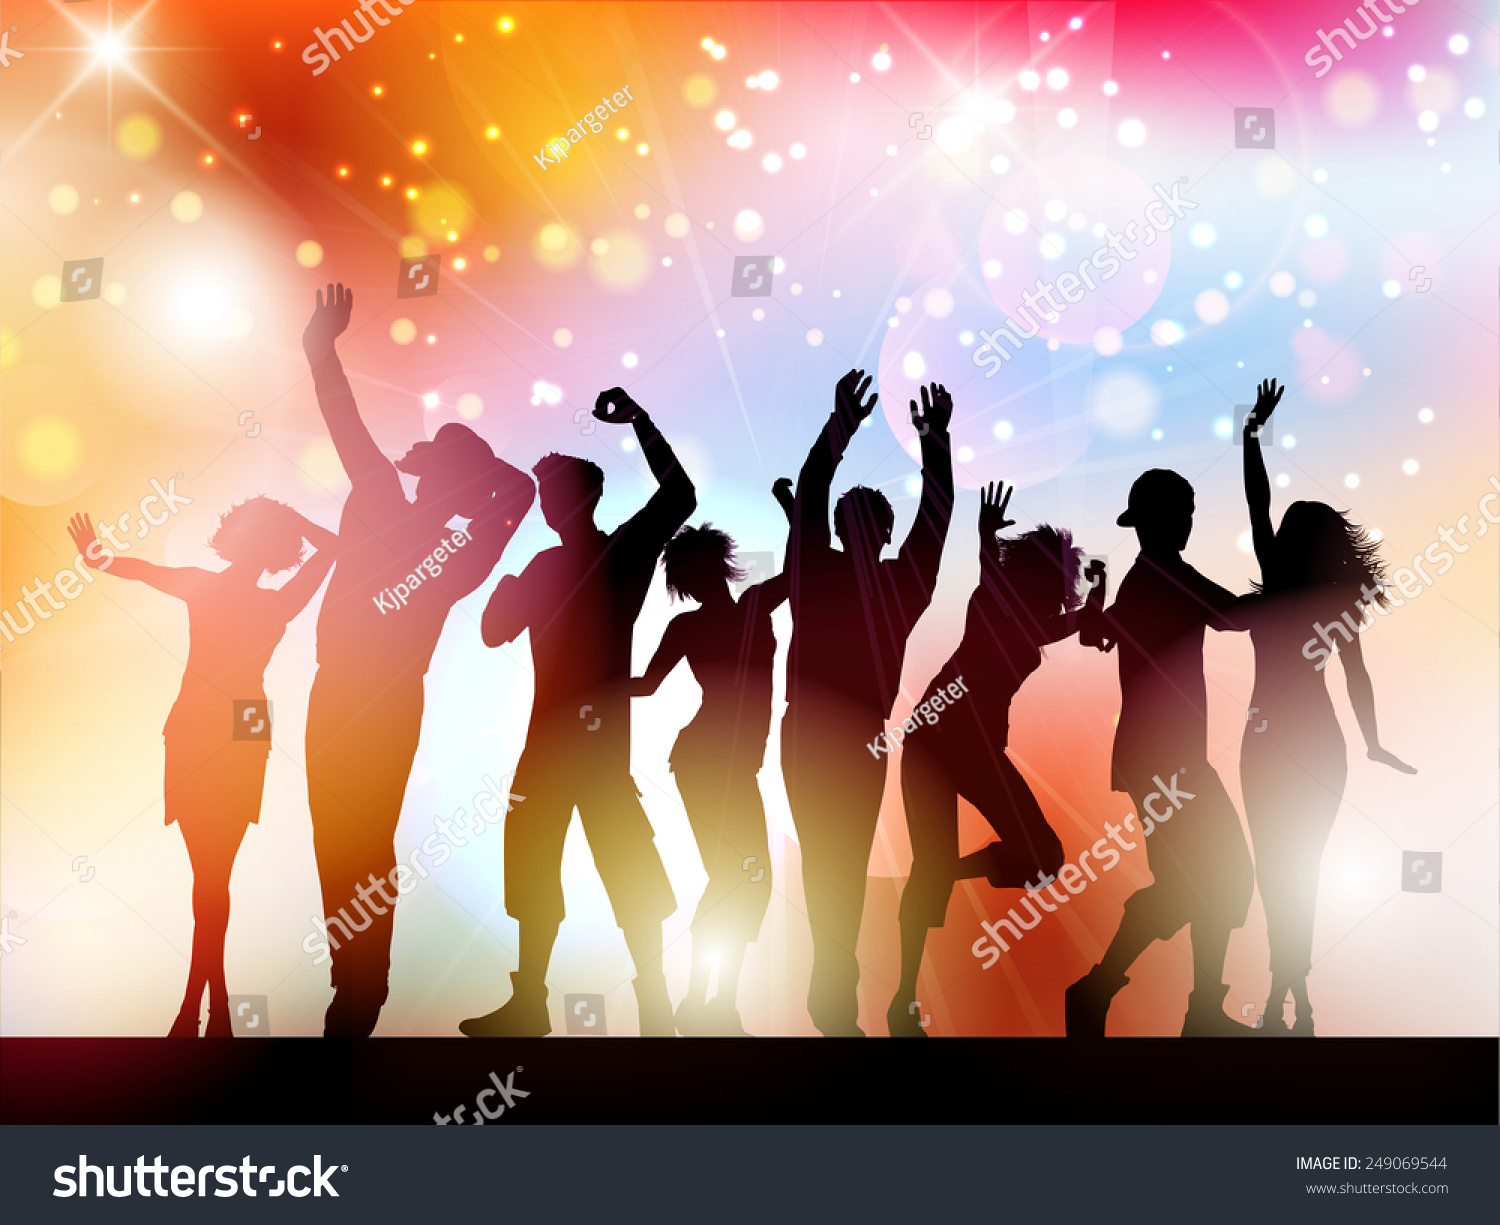 Silhouette Dance Music Abstract Background: Silhouettes Of People Dancing On An Abstract Lights